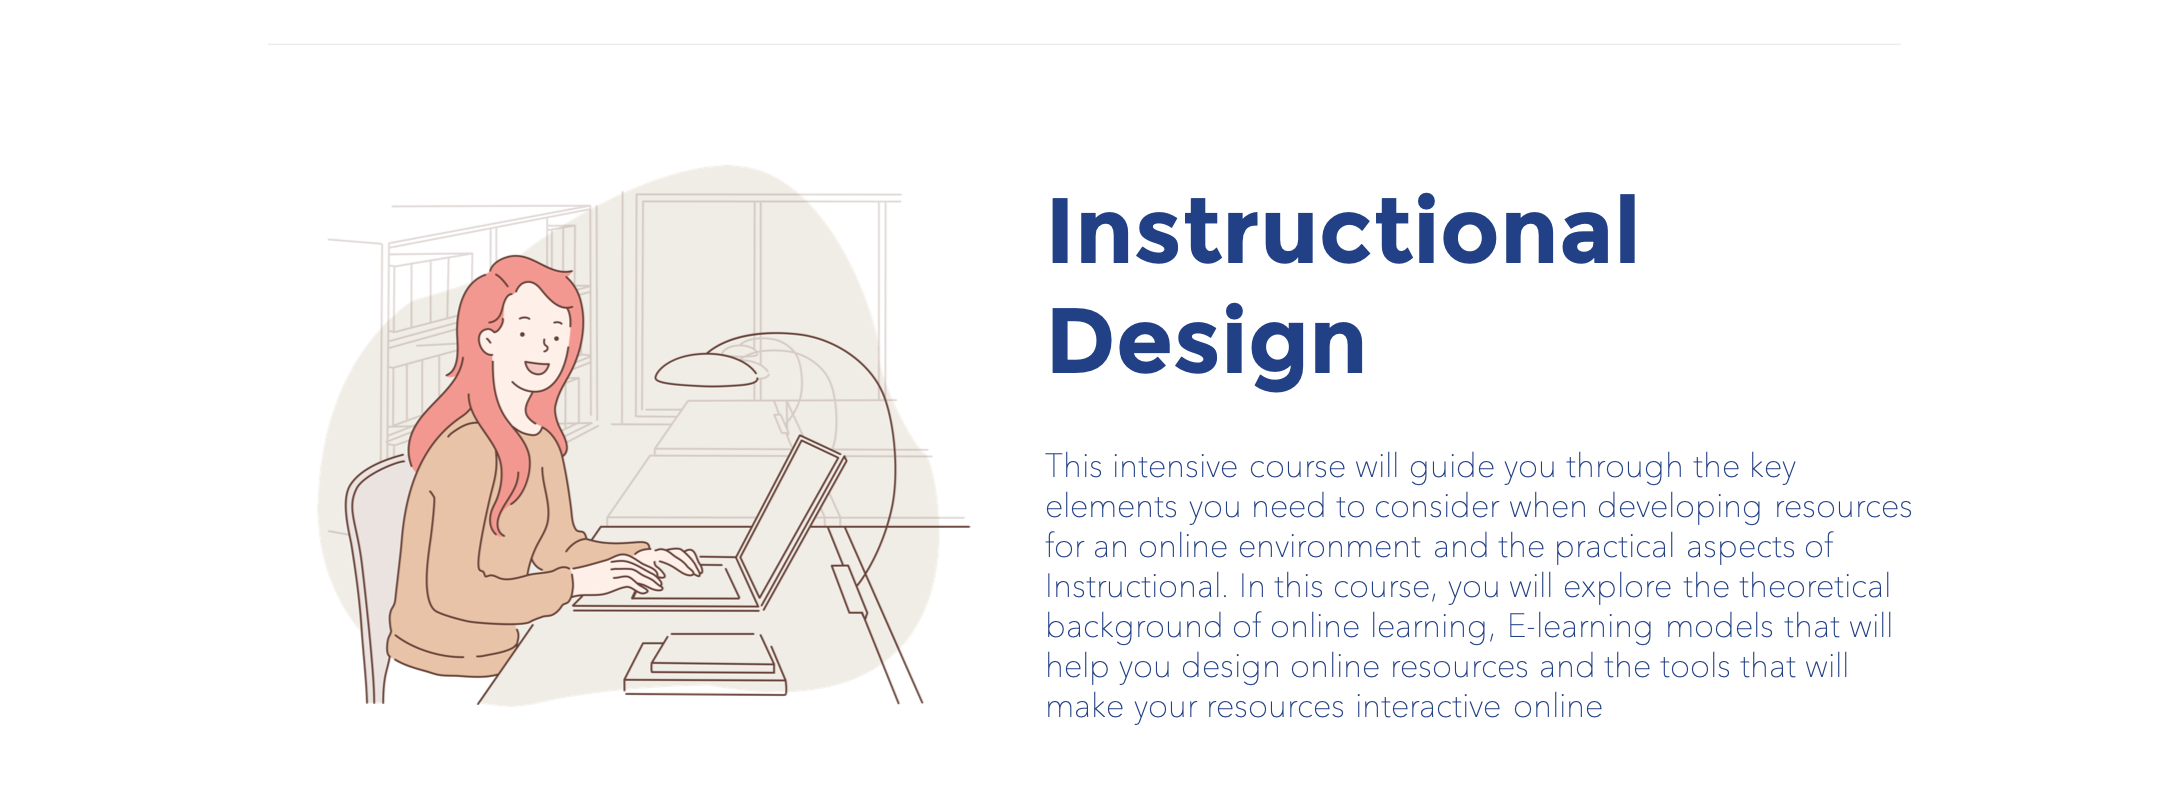 Instructional Design Qaspir